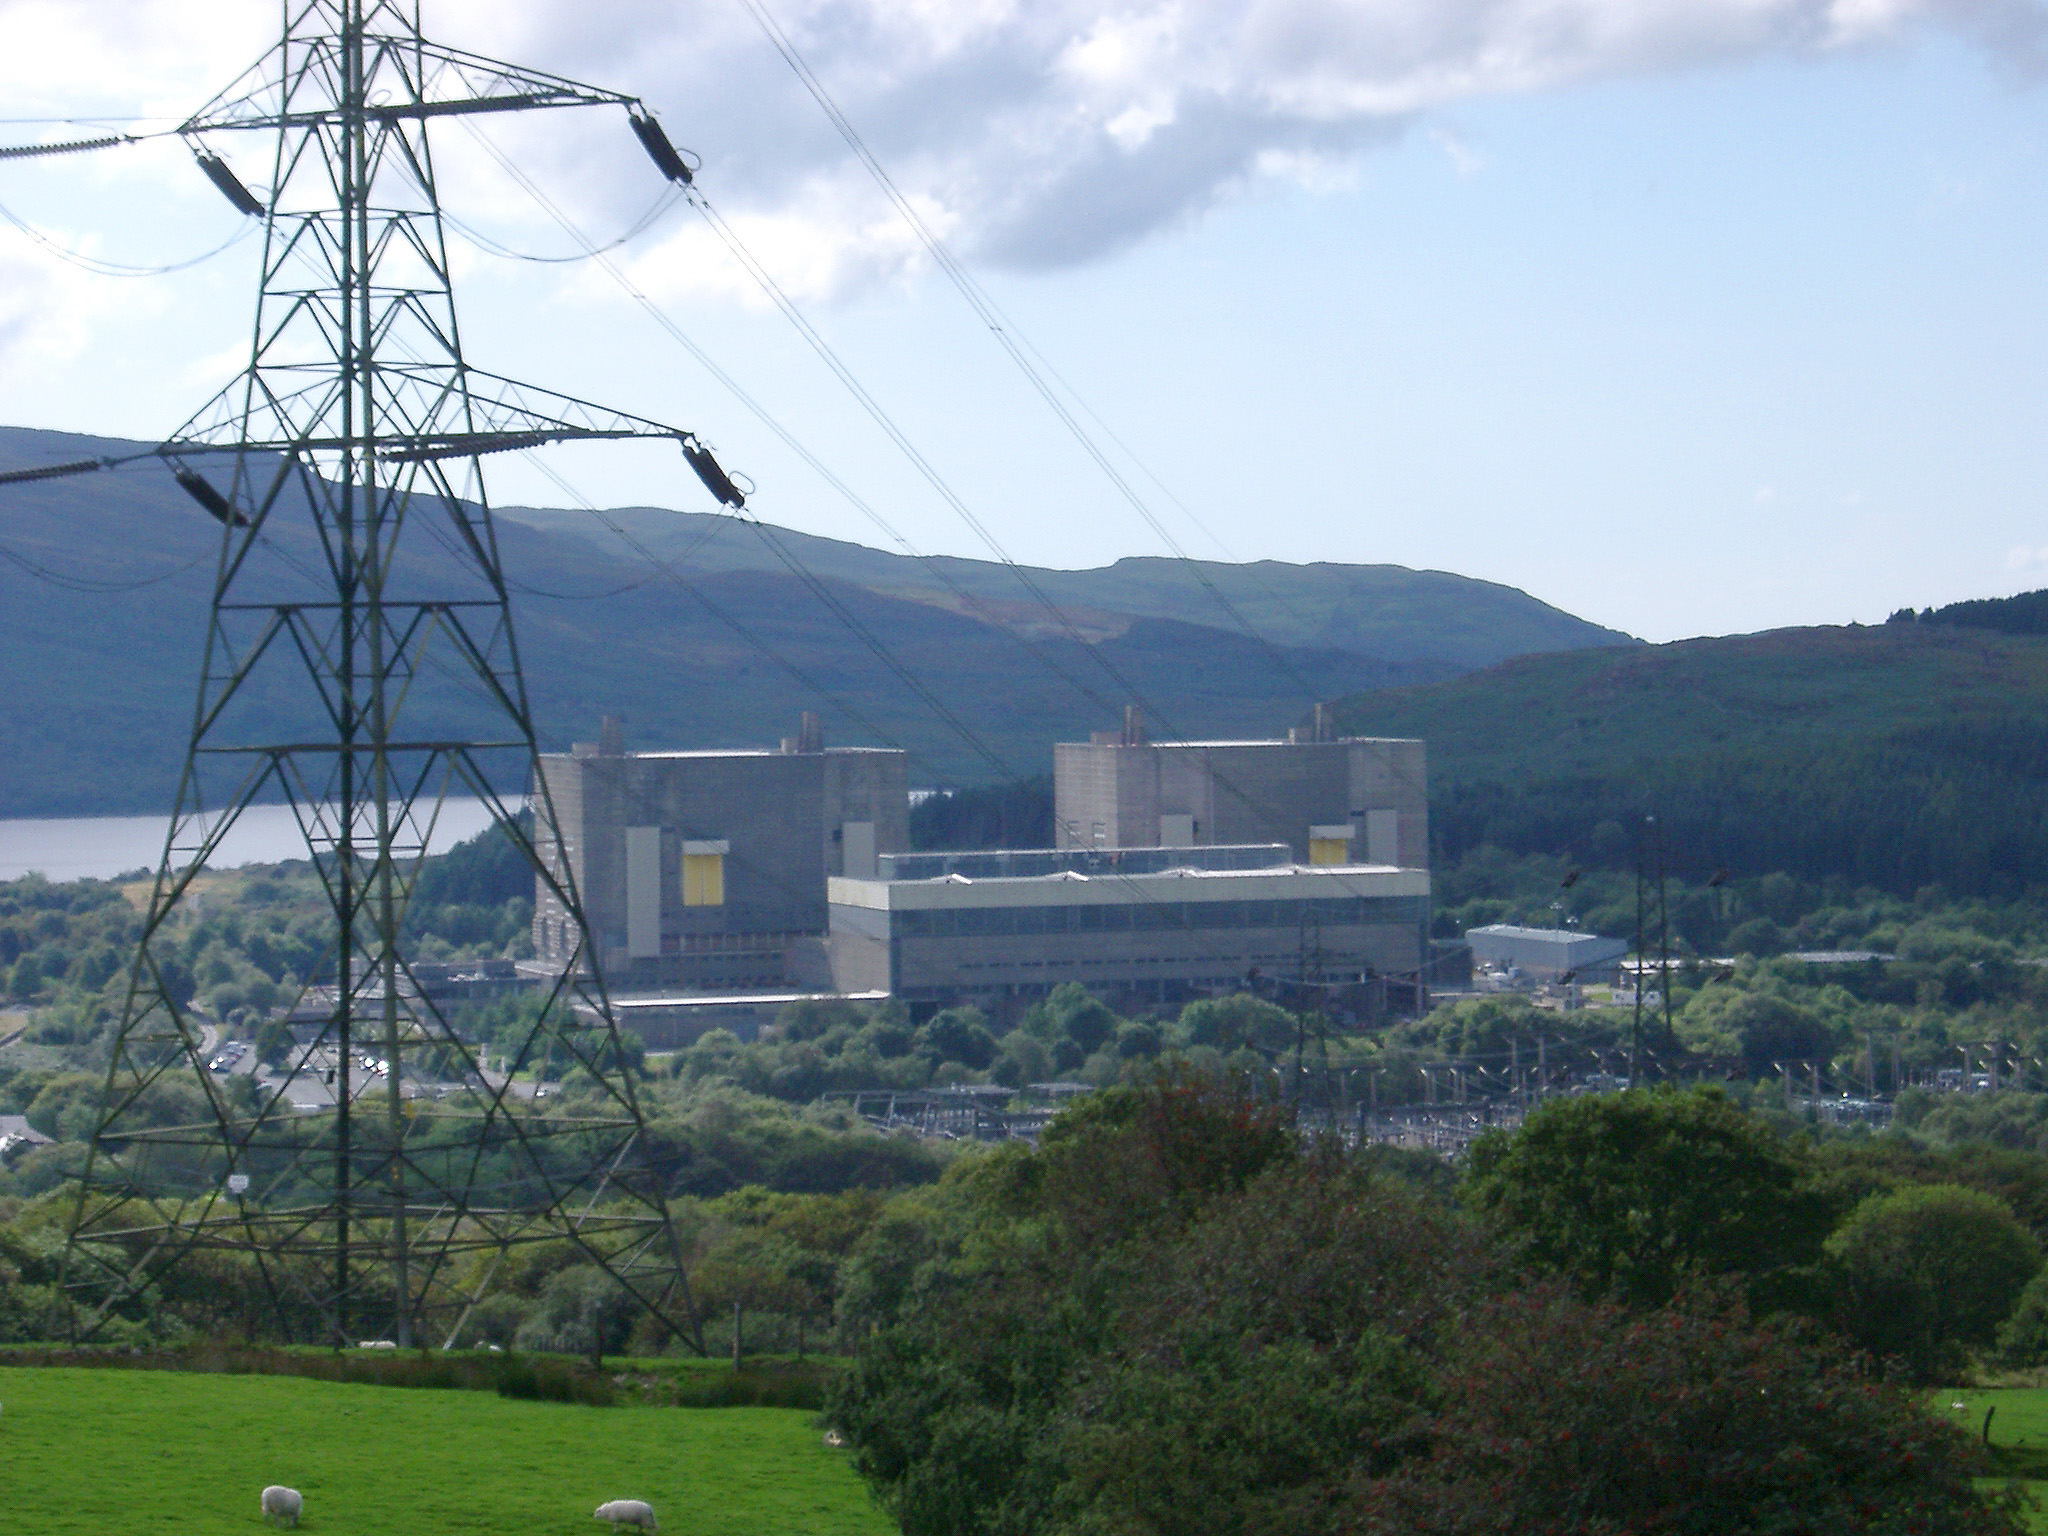 Nuclear Power Station in Trawsfynydd, Wales, showing an exterior view of the buildings and installation with an electric pylon and cables in the foreground